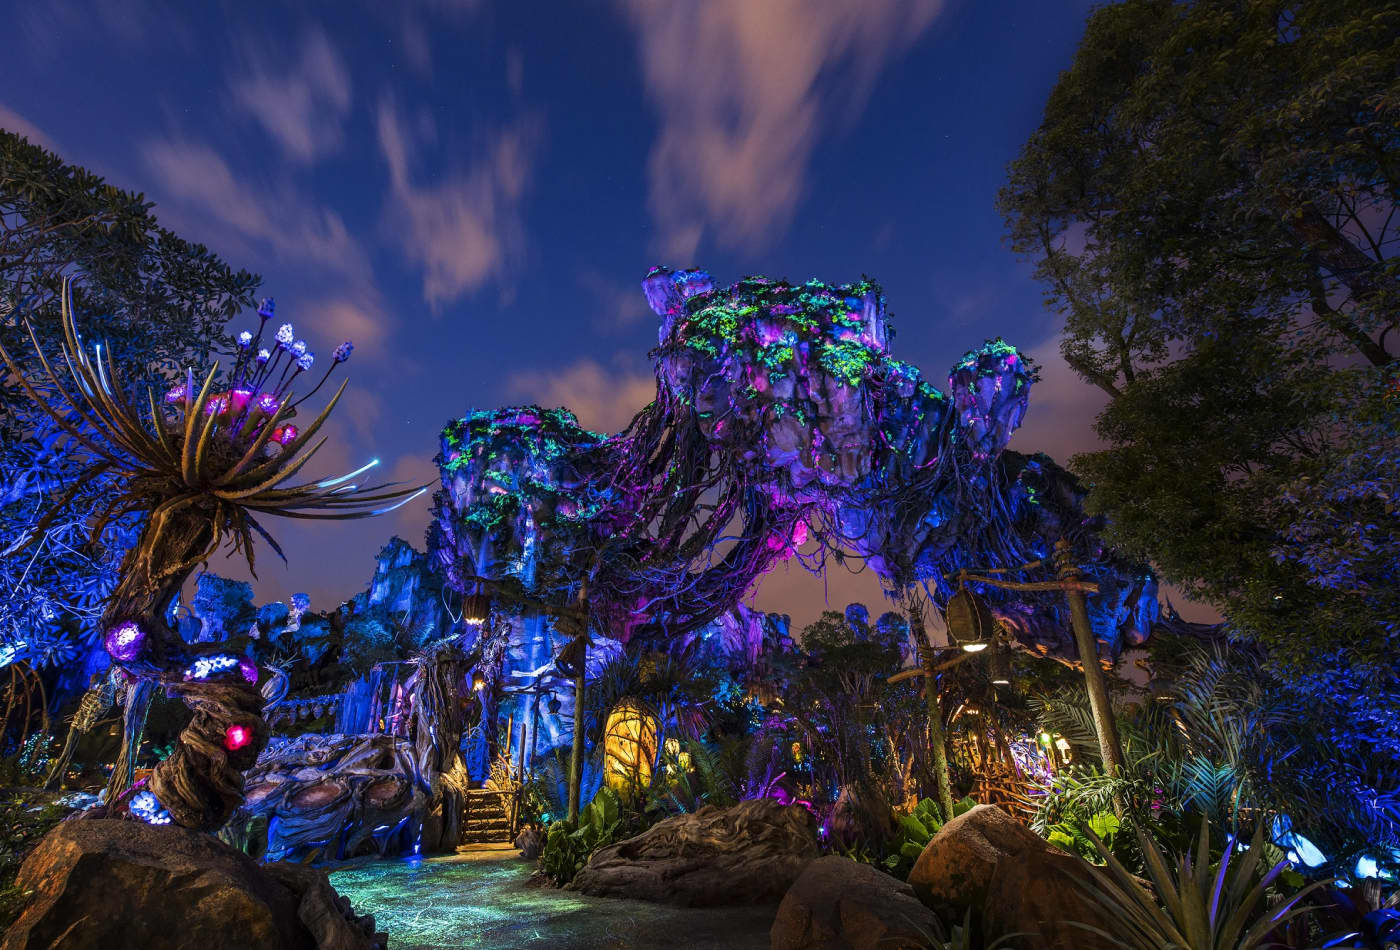 Win contest to stay overnight at Disney World's Avatar